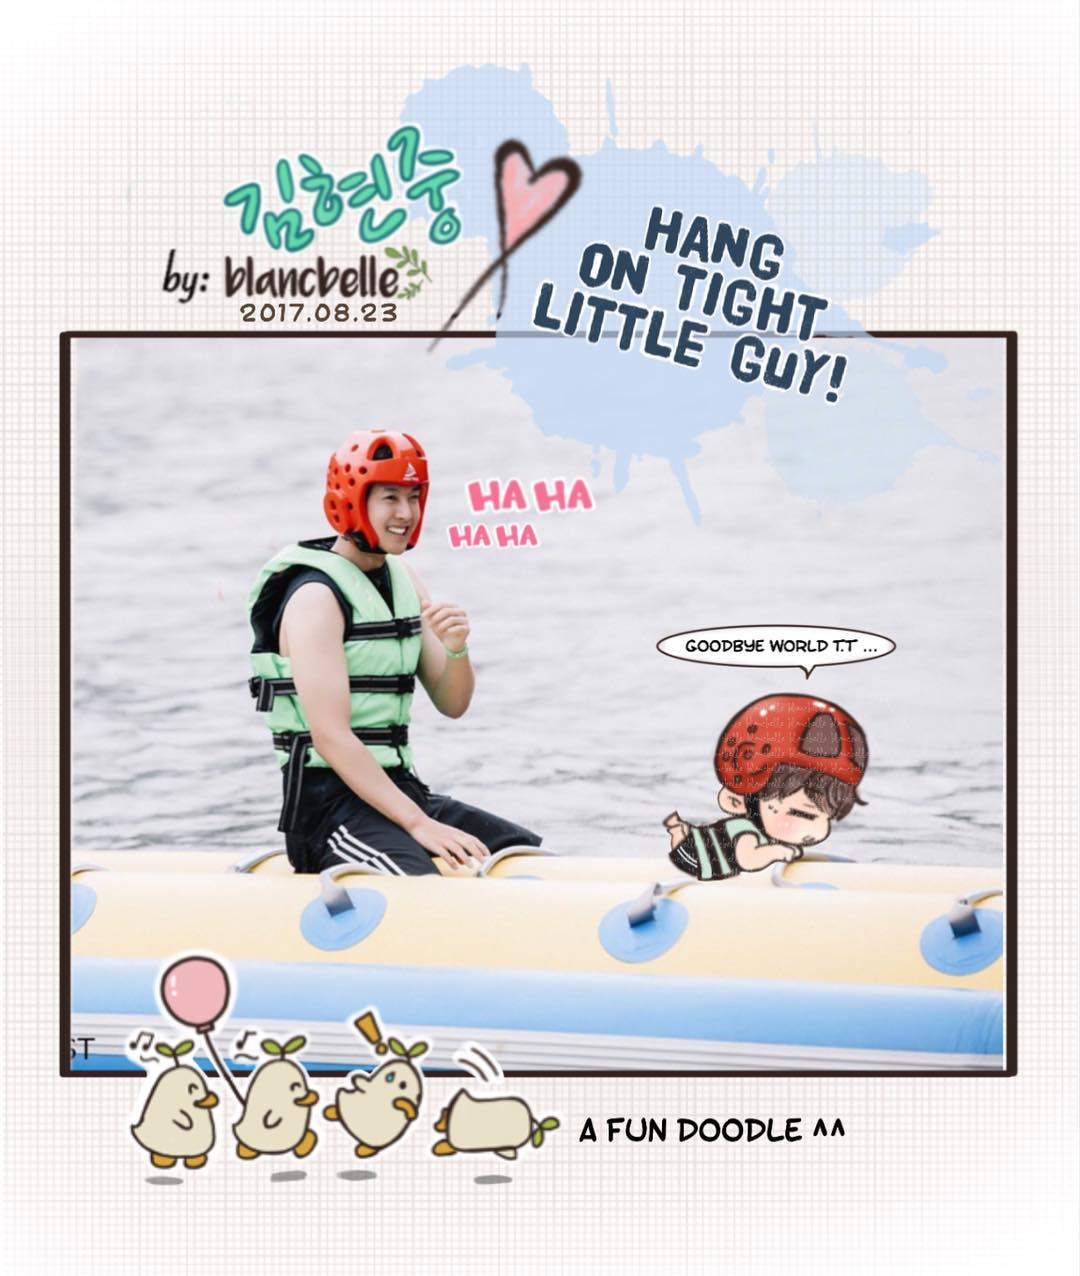 [blancbelle Fanart] Kim Hyun Joong hang on tight little guy [2017.08.23]